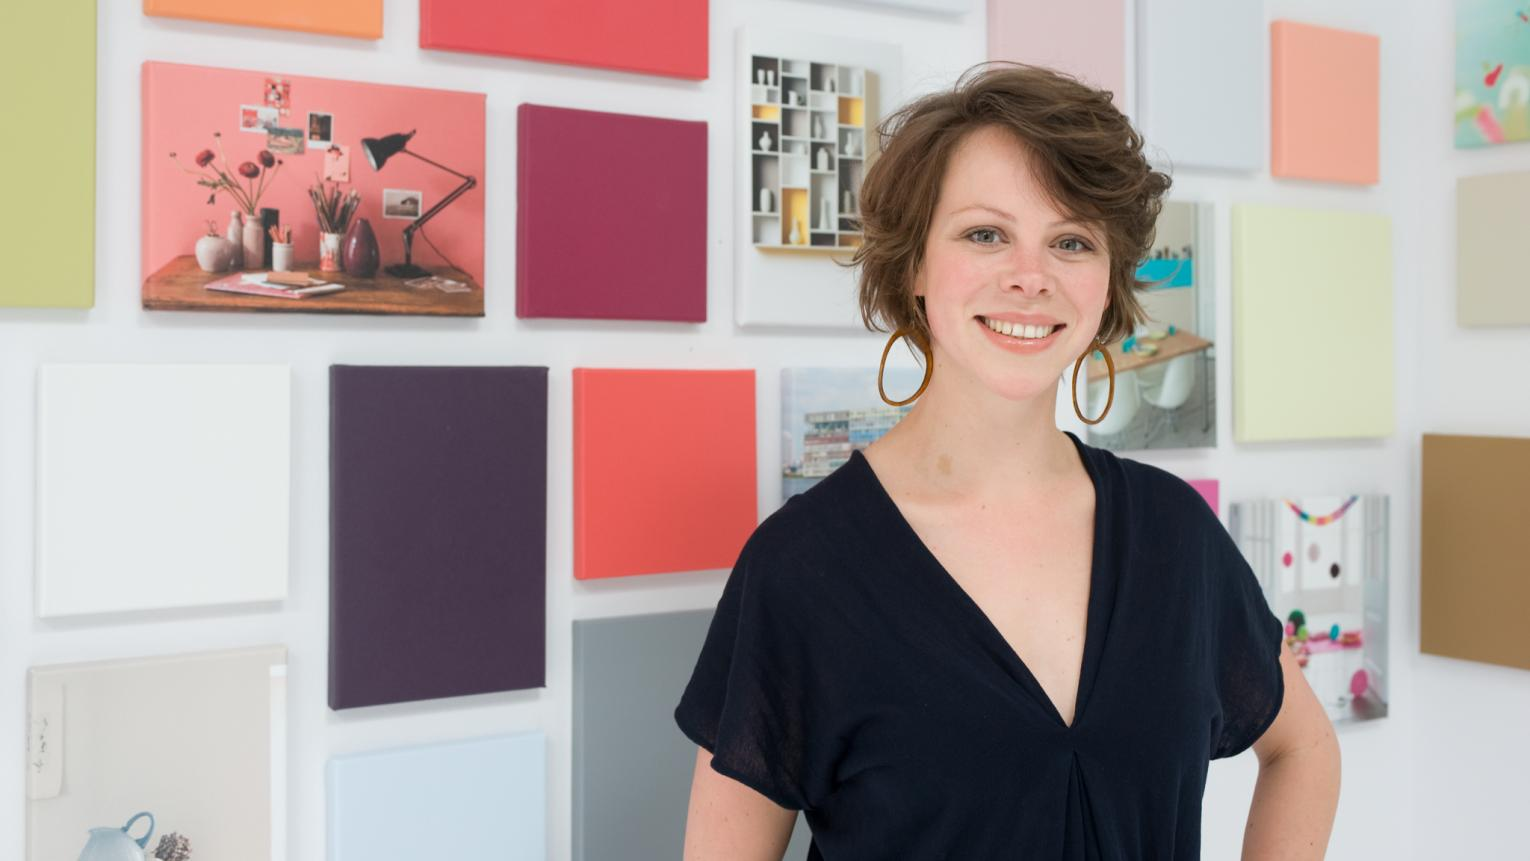 Marieke uses her colour expertise to create colour collections and tools that help people find the colour they love.